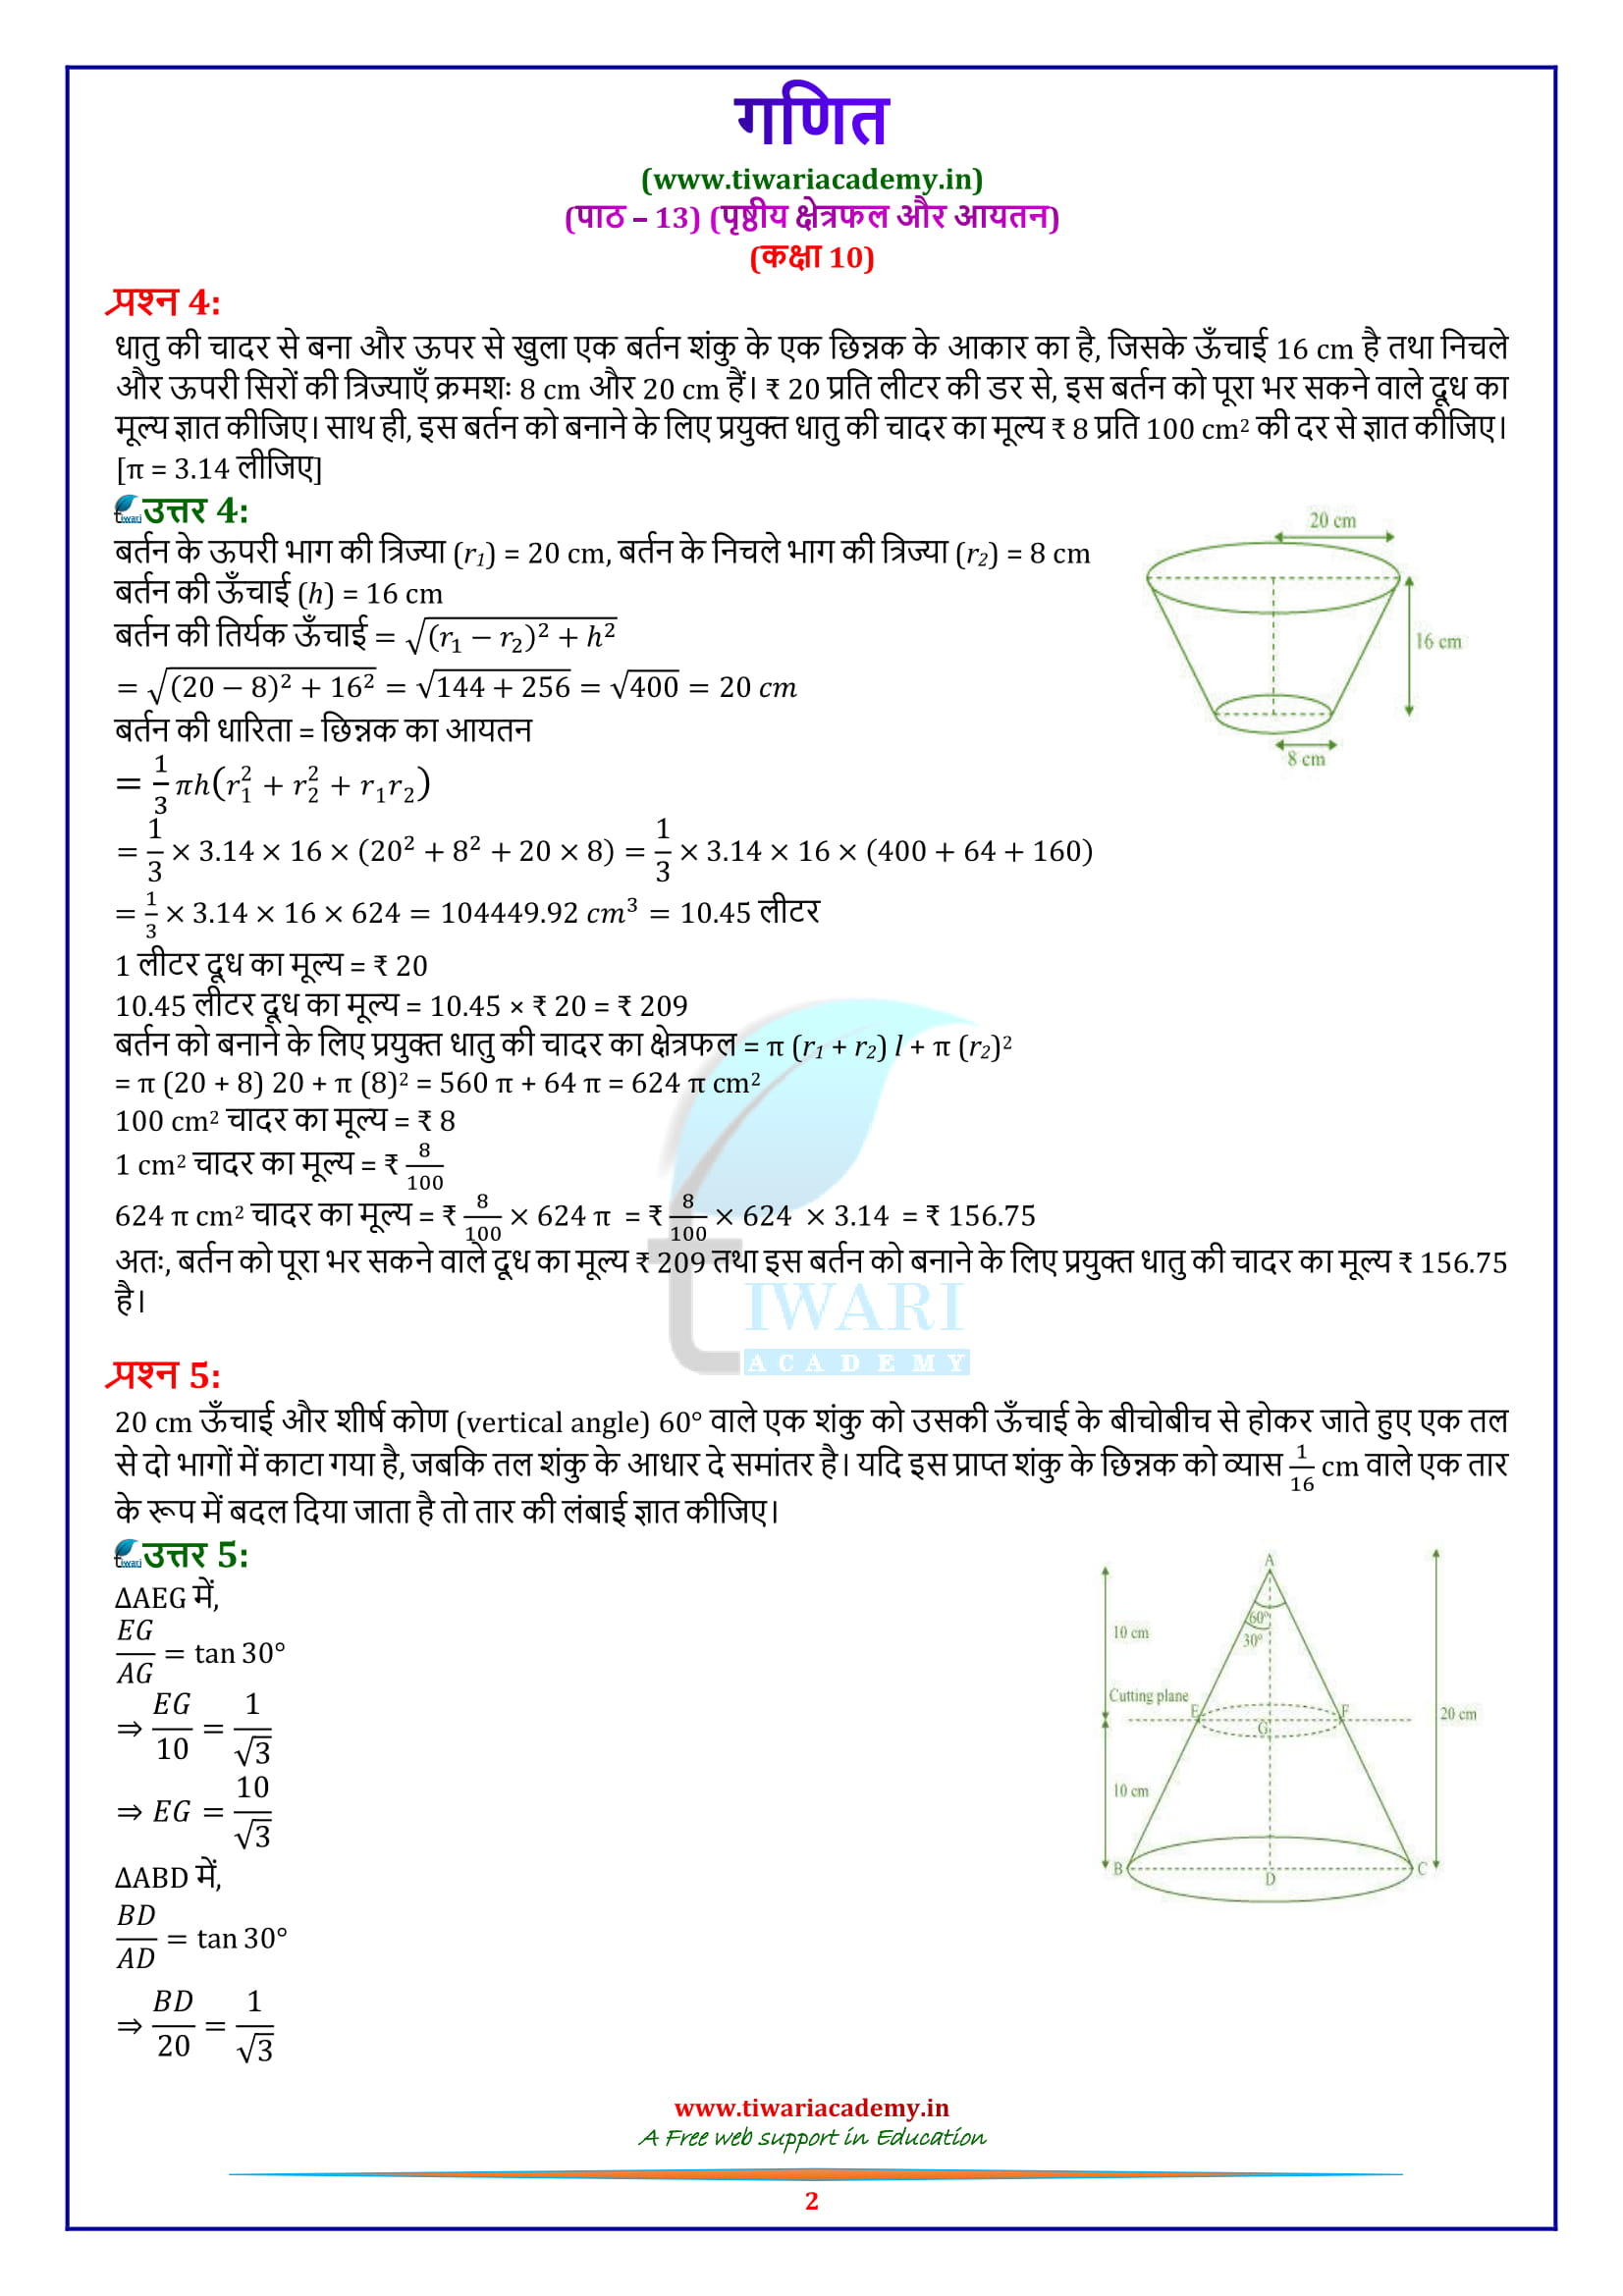 Class 10 Maths Exercise 13.4 solutions in hindi medium